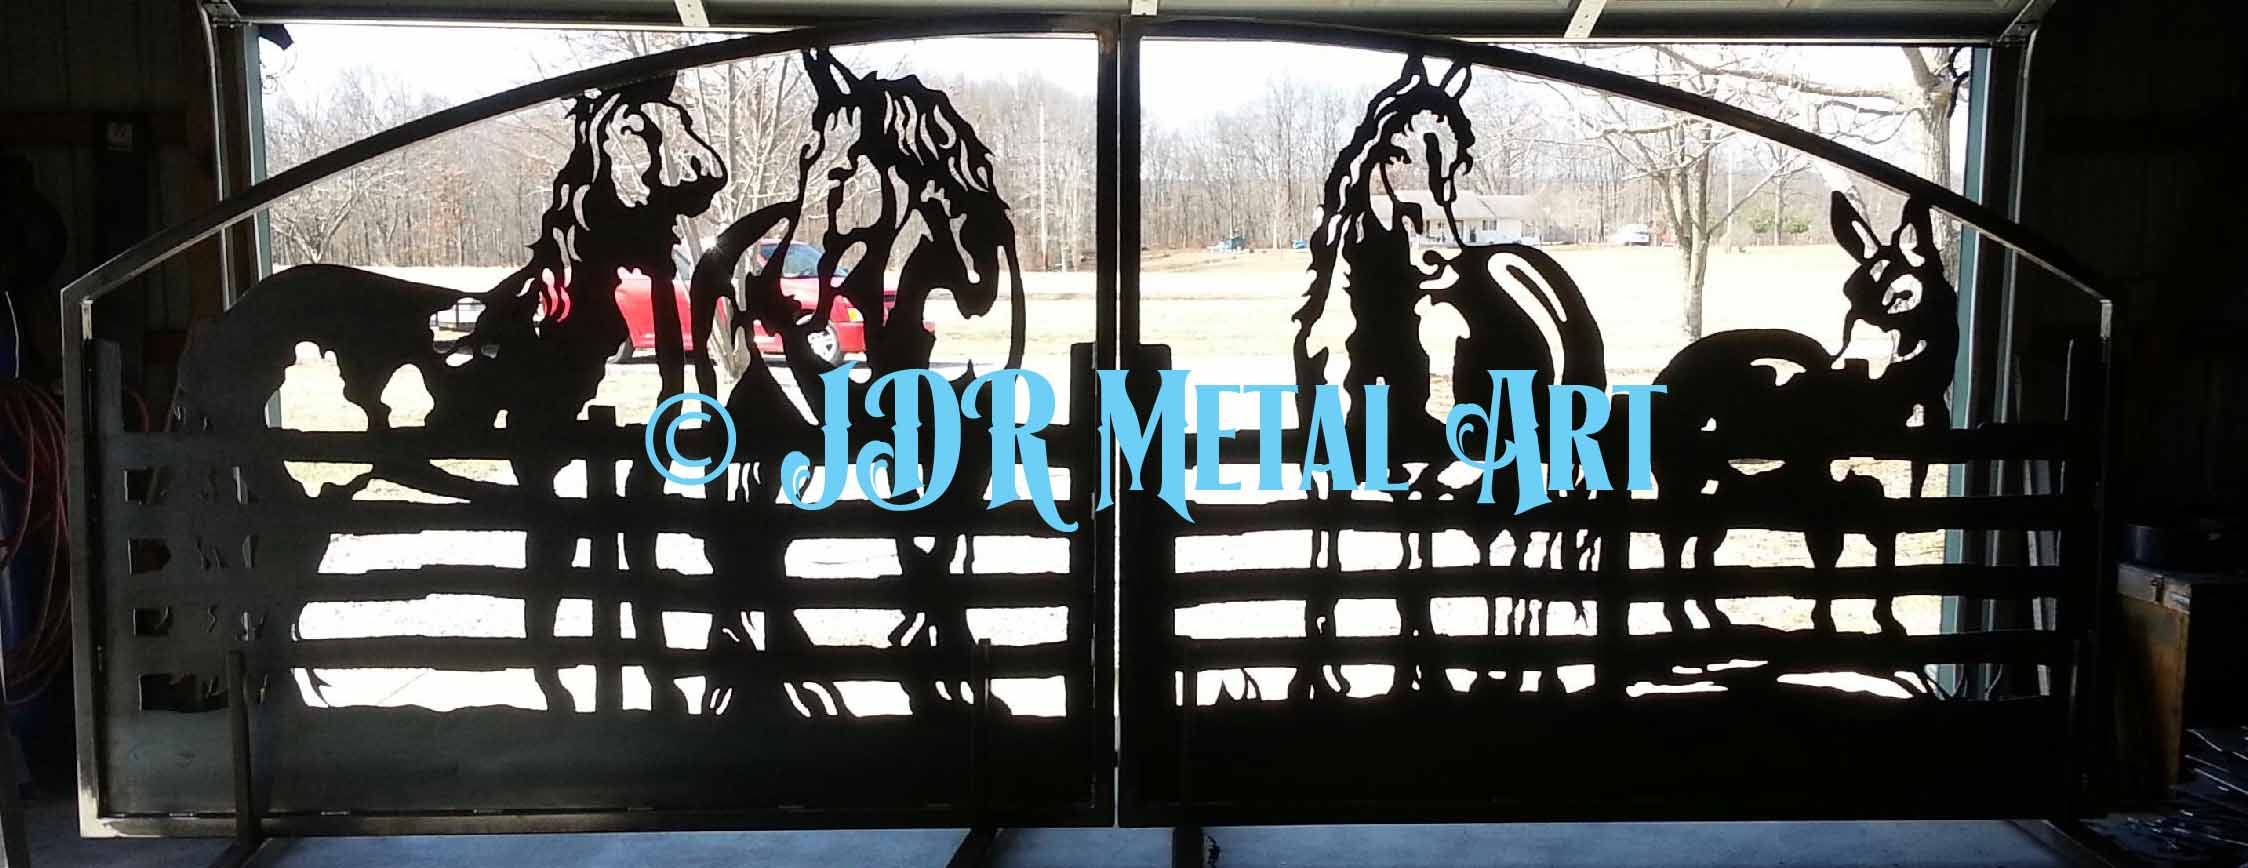 Design elements plasma cutting custom design plasma cutting artistic - Decorative Driveway Gate With Metal Silhouette Of Four Horses At Fence Here Is A Custom Designed